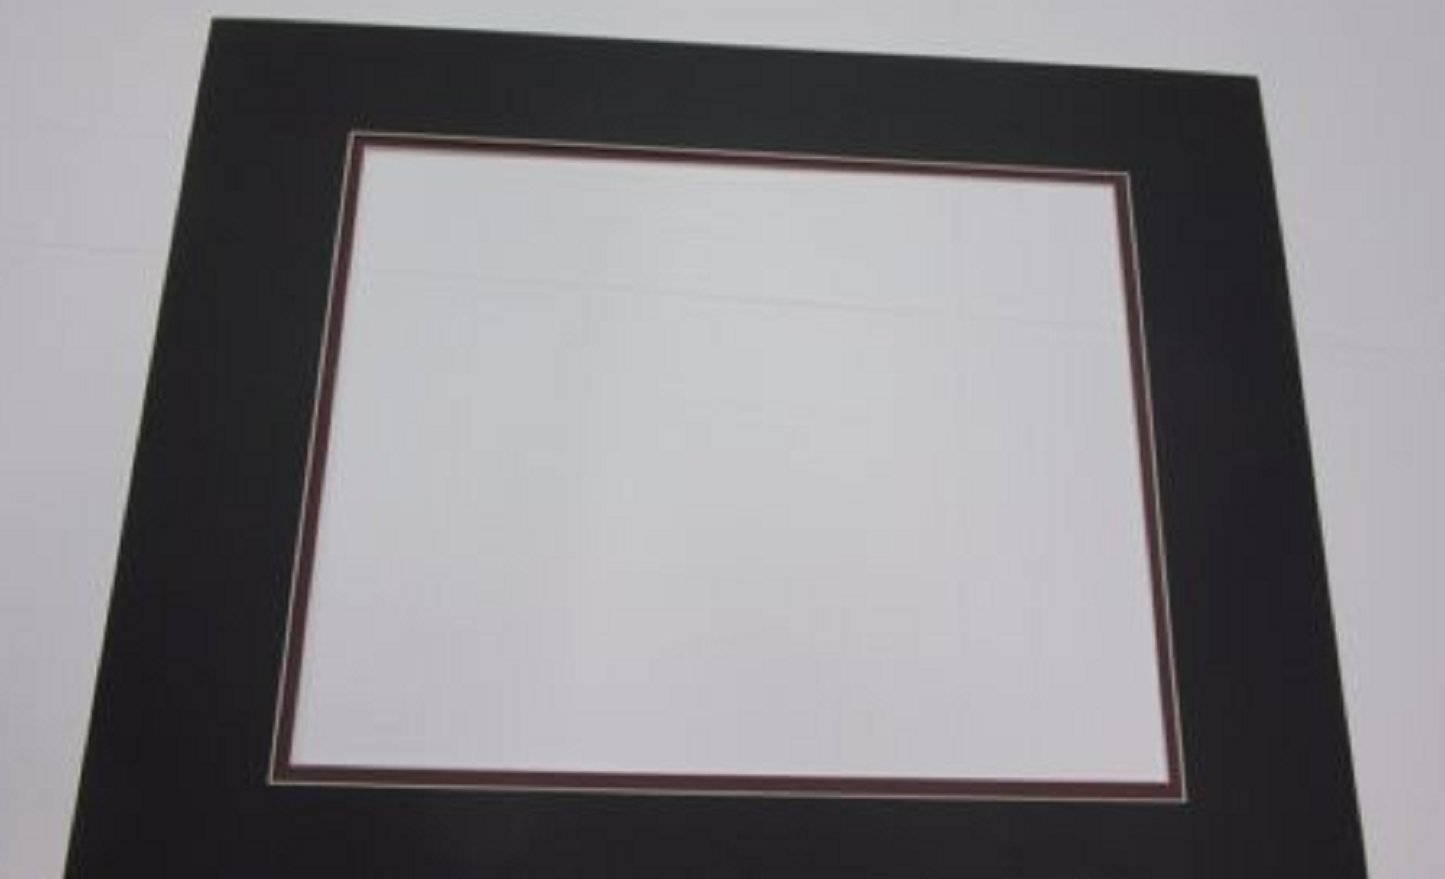 USA Premium Store Picture Framing Mats 16x20 for 11x14 photo set of 3 Black with Garnet liners by USA Premium Store